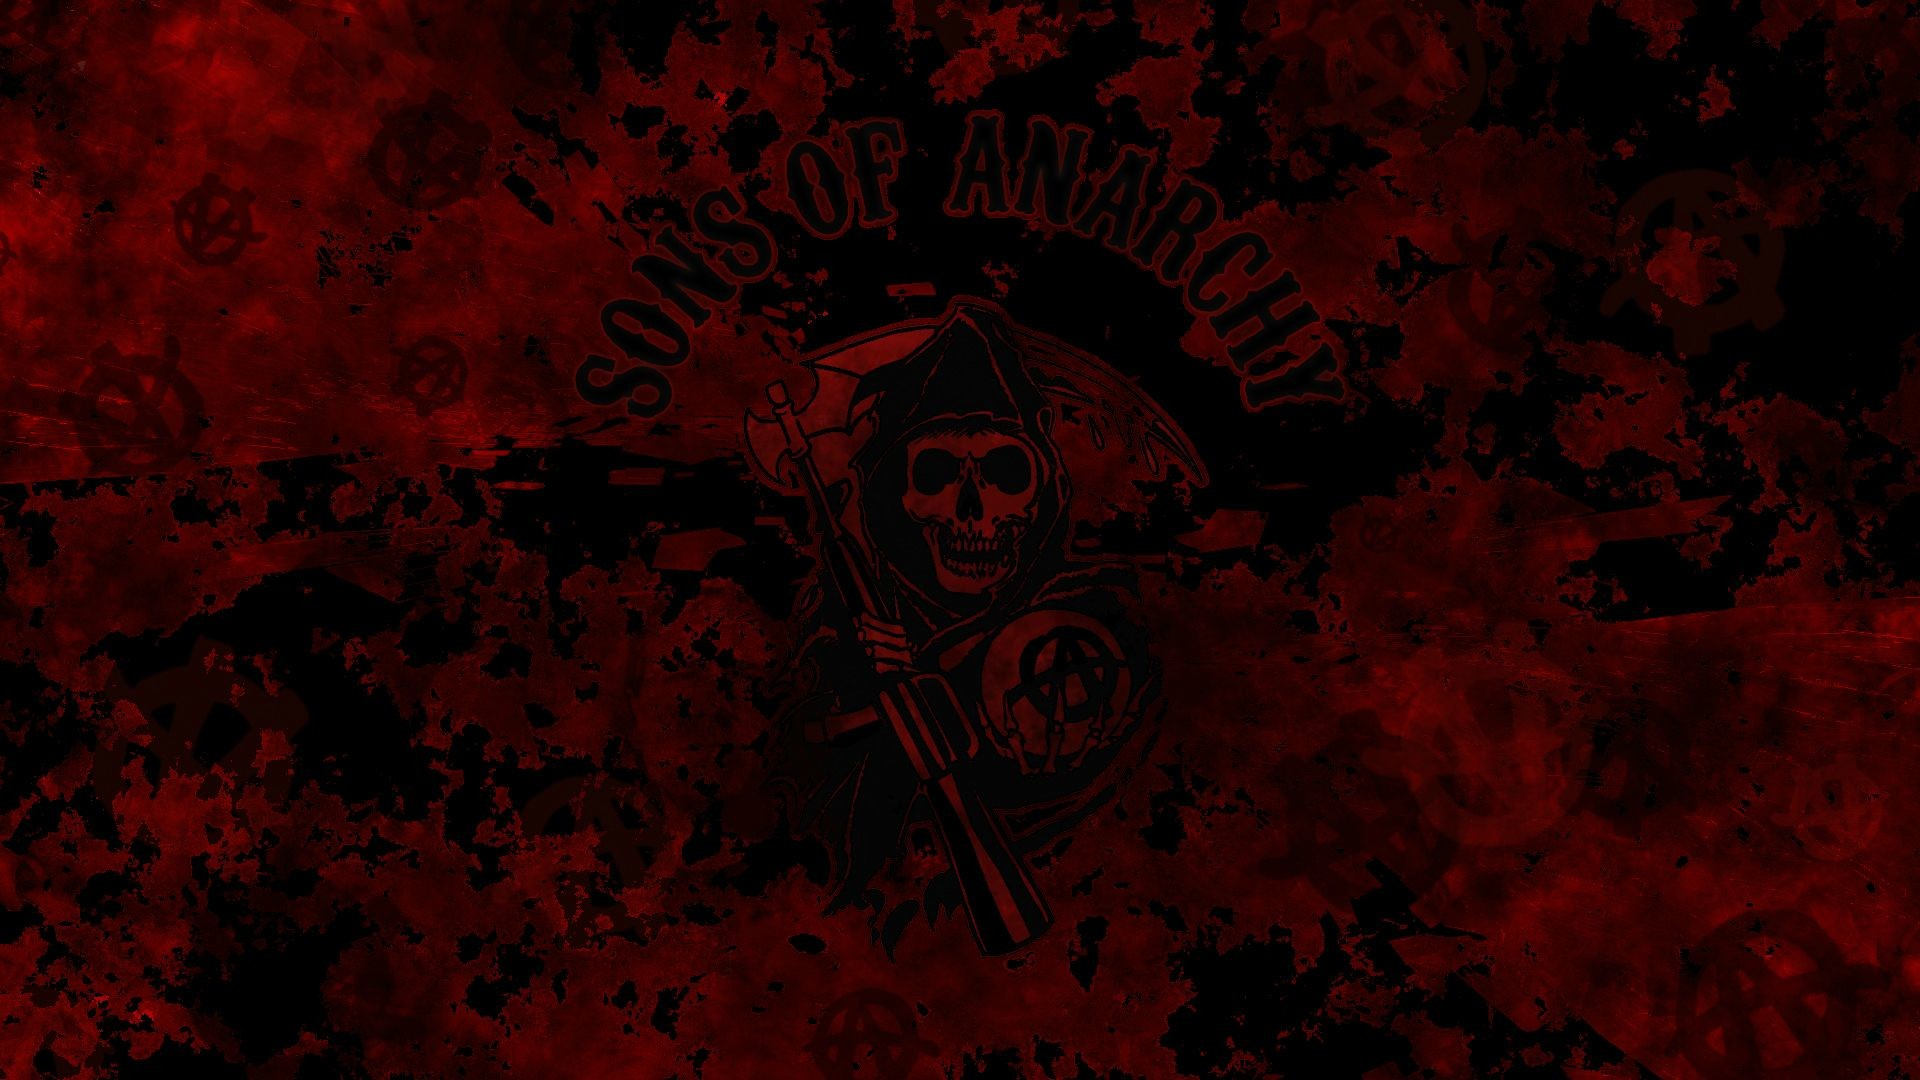 Supreme Wallpaper Girl Cartoon Sons Of Anarchy Reaper Wallpaper 67 Images